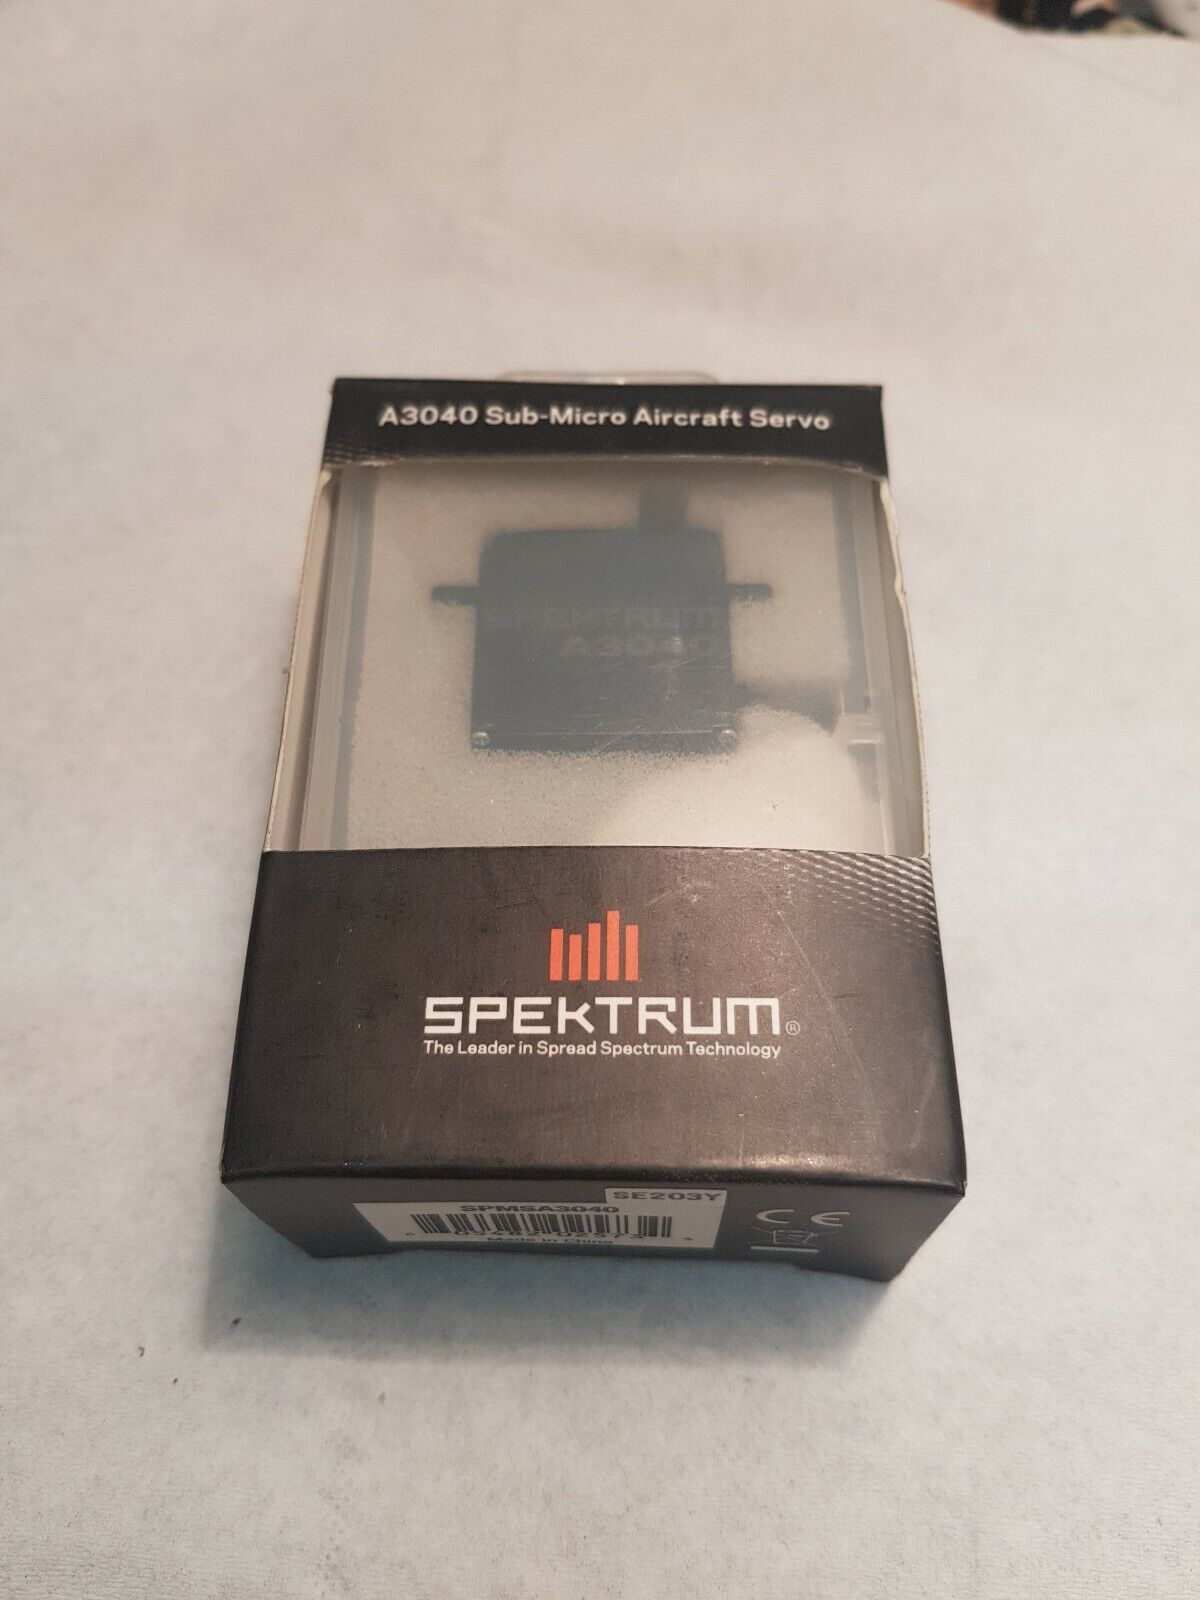 SERVII DIGITALI SPEKTRUM A040 ­SUB MOCRO DIGITAL HO TORQUE LUCRAFT MG